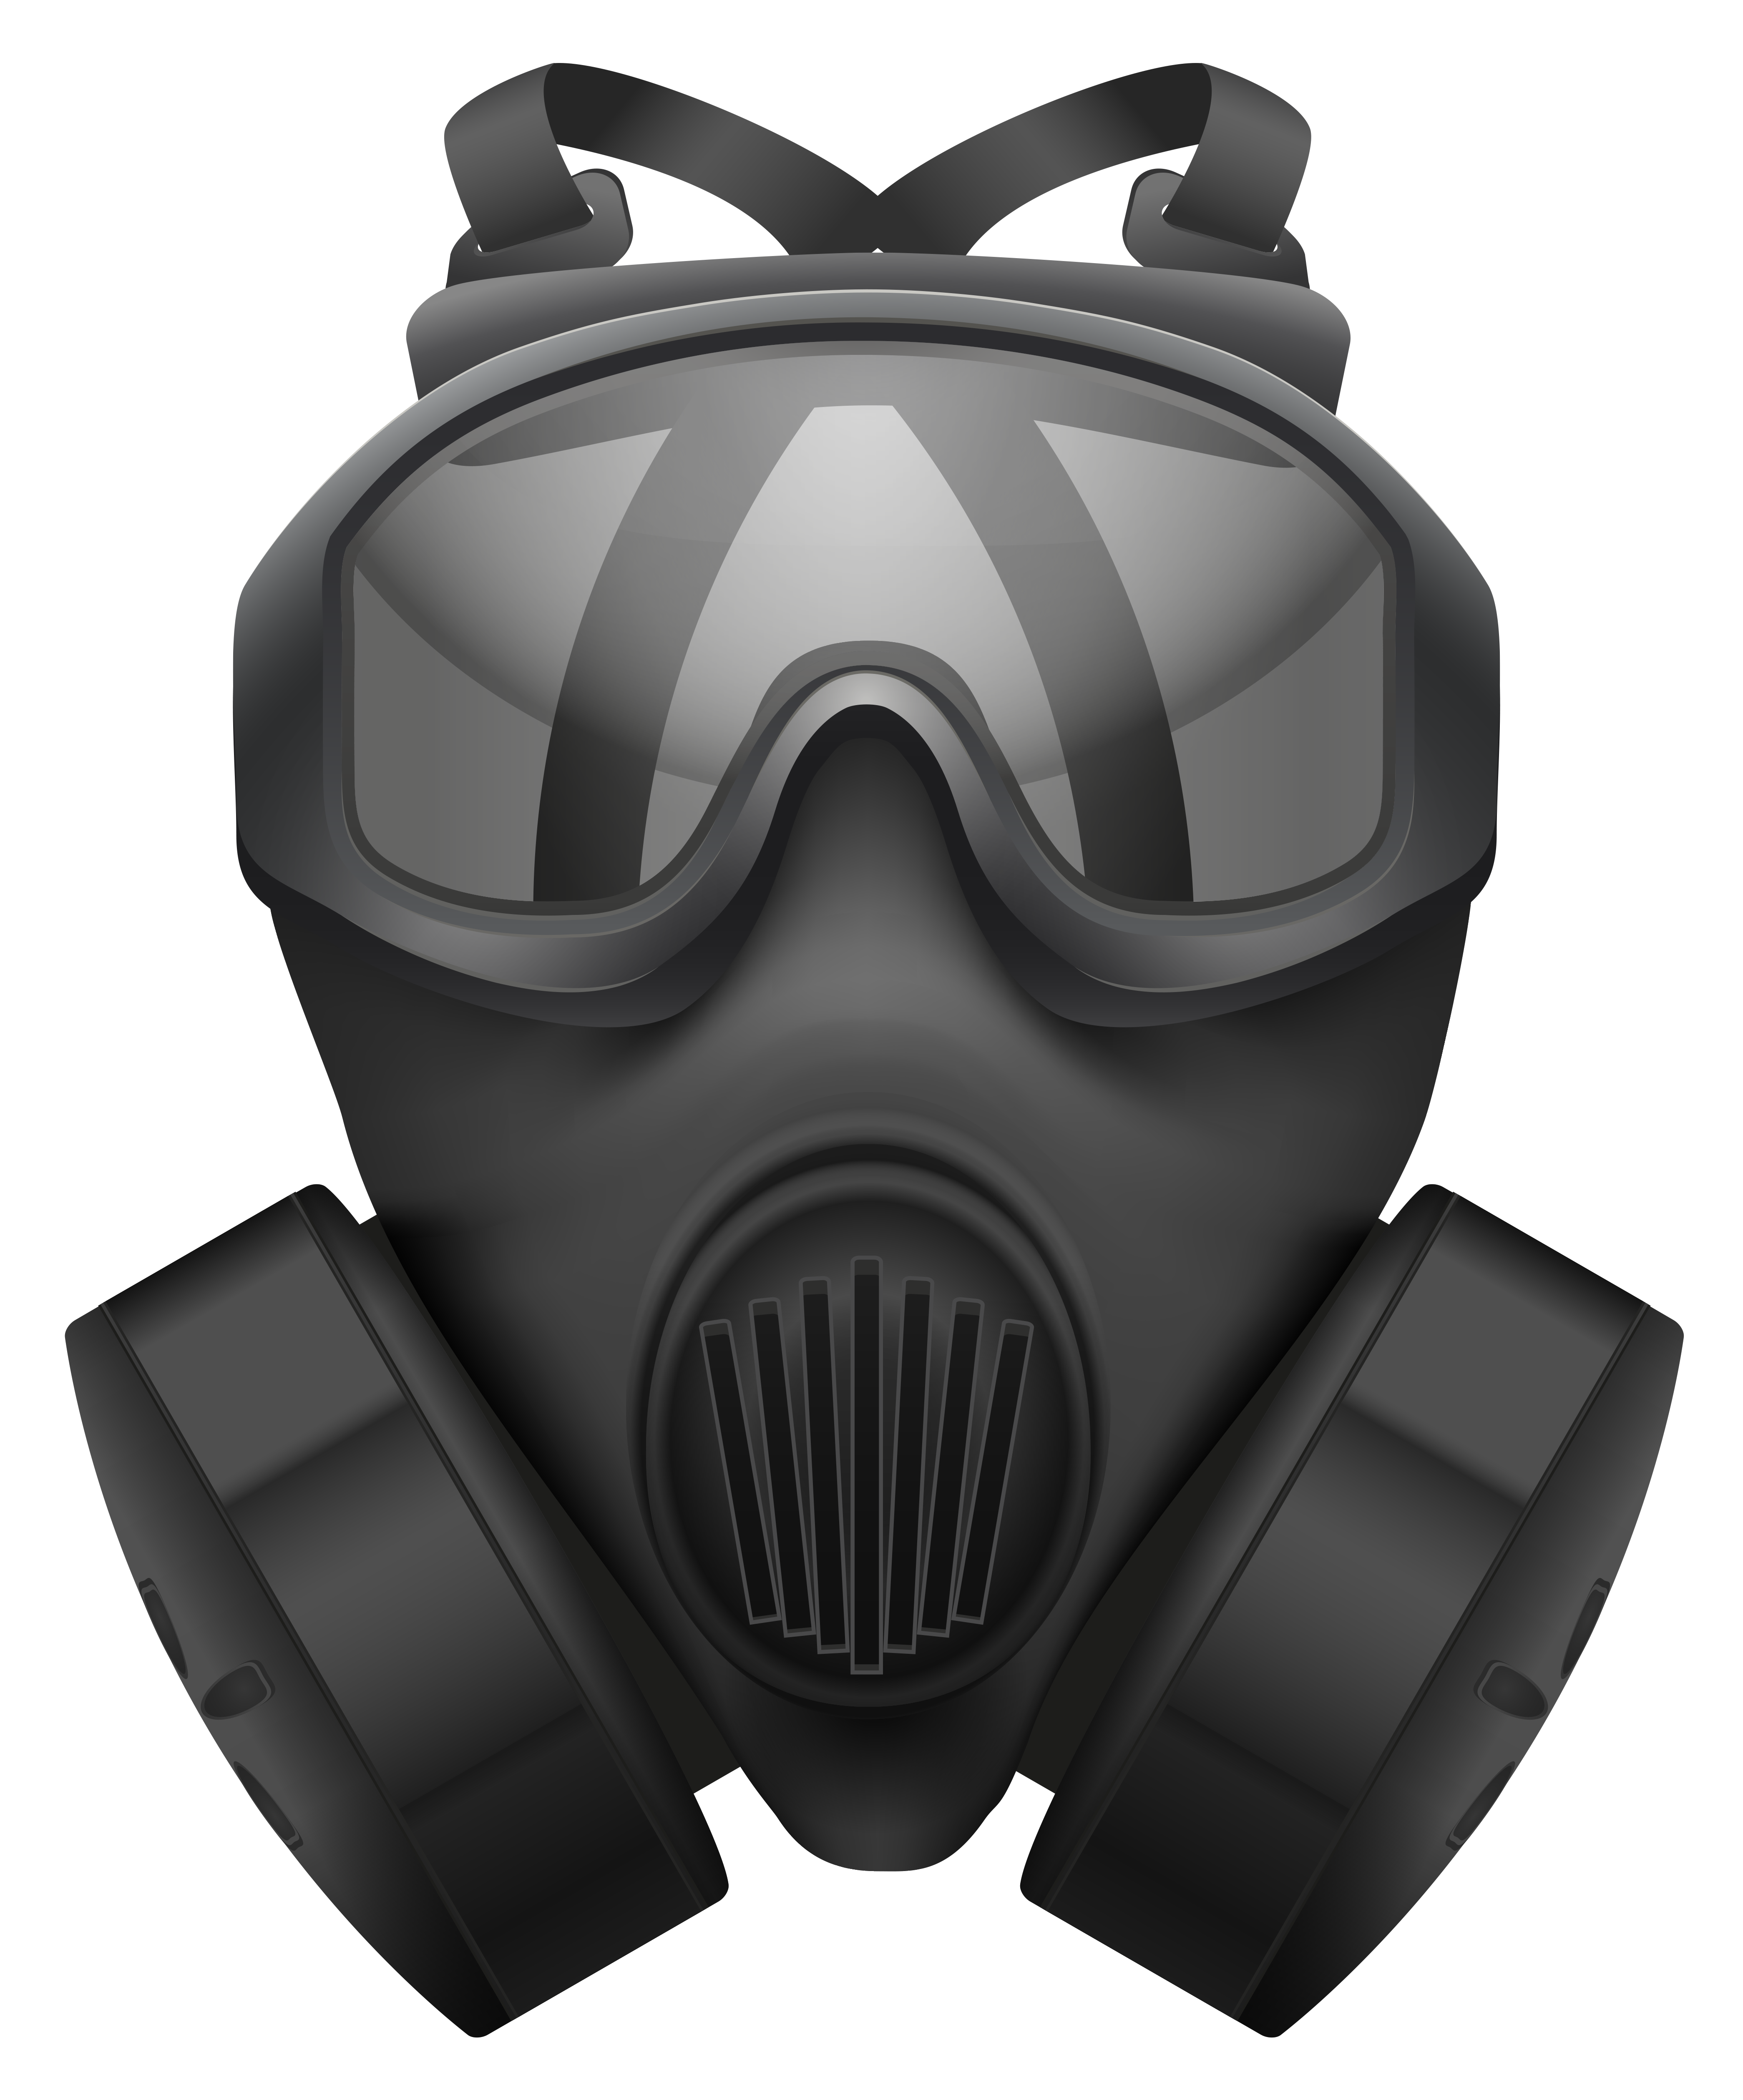 Mask png image purepng. Gas vector white background graphic download